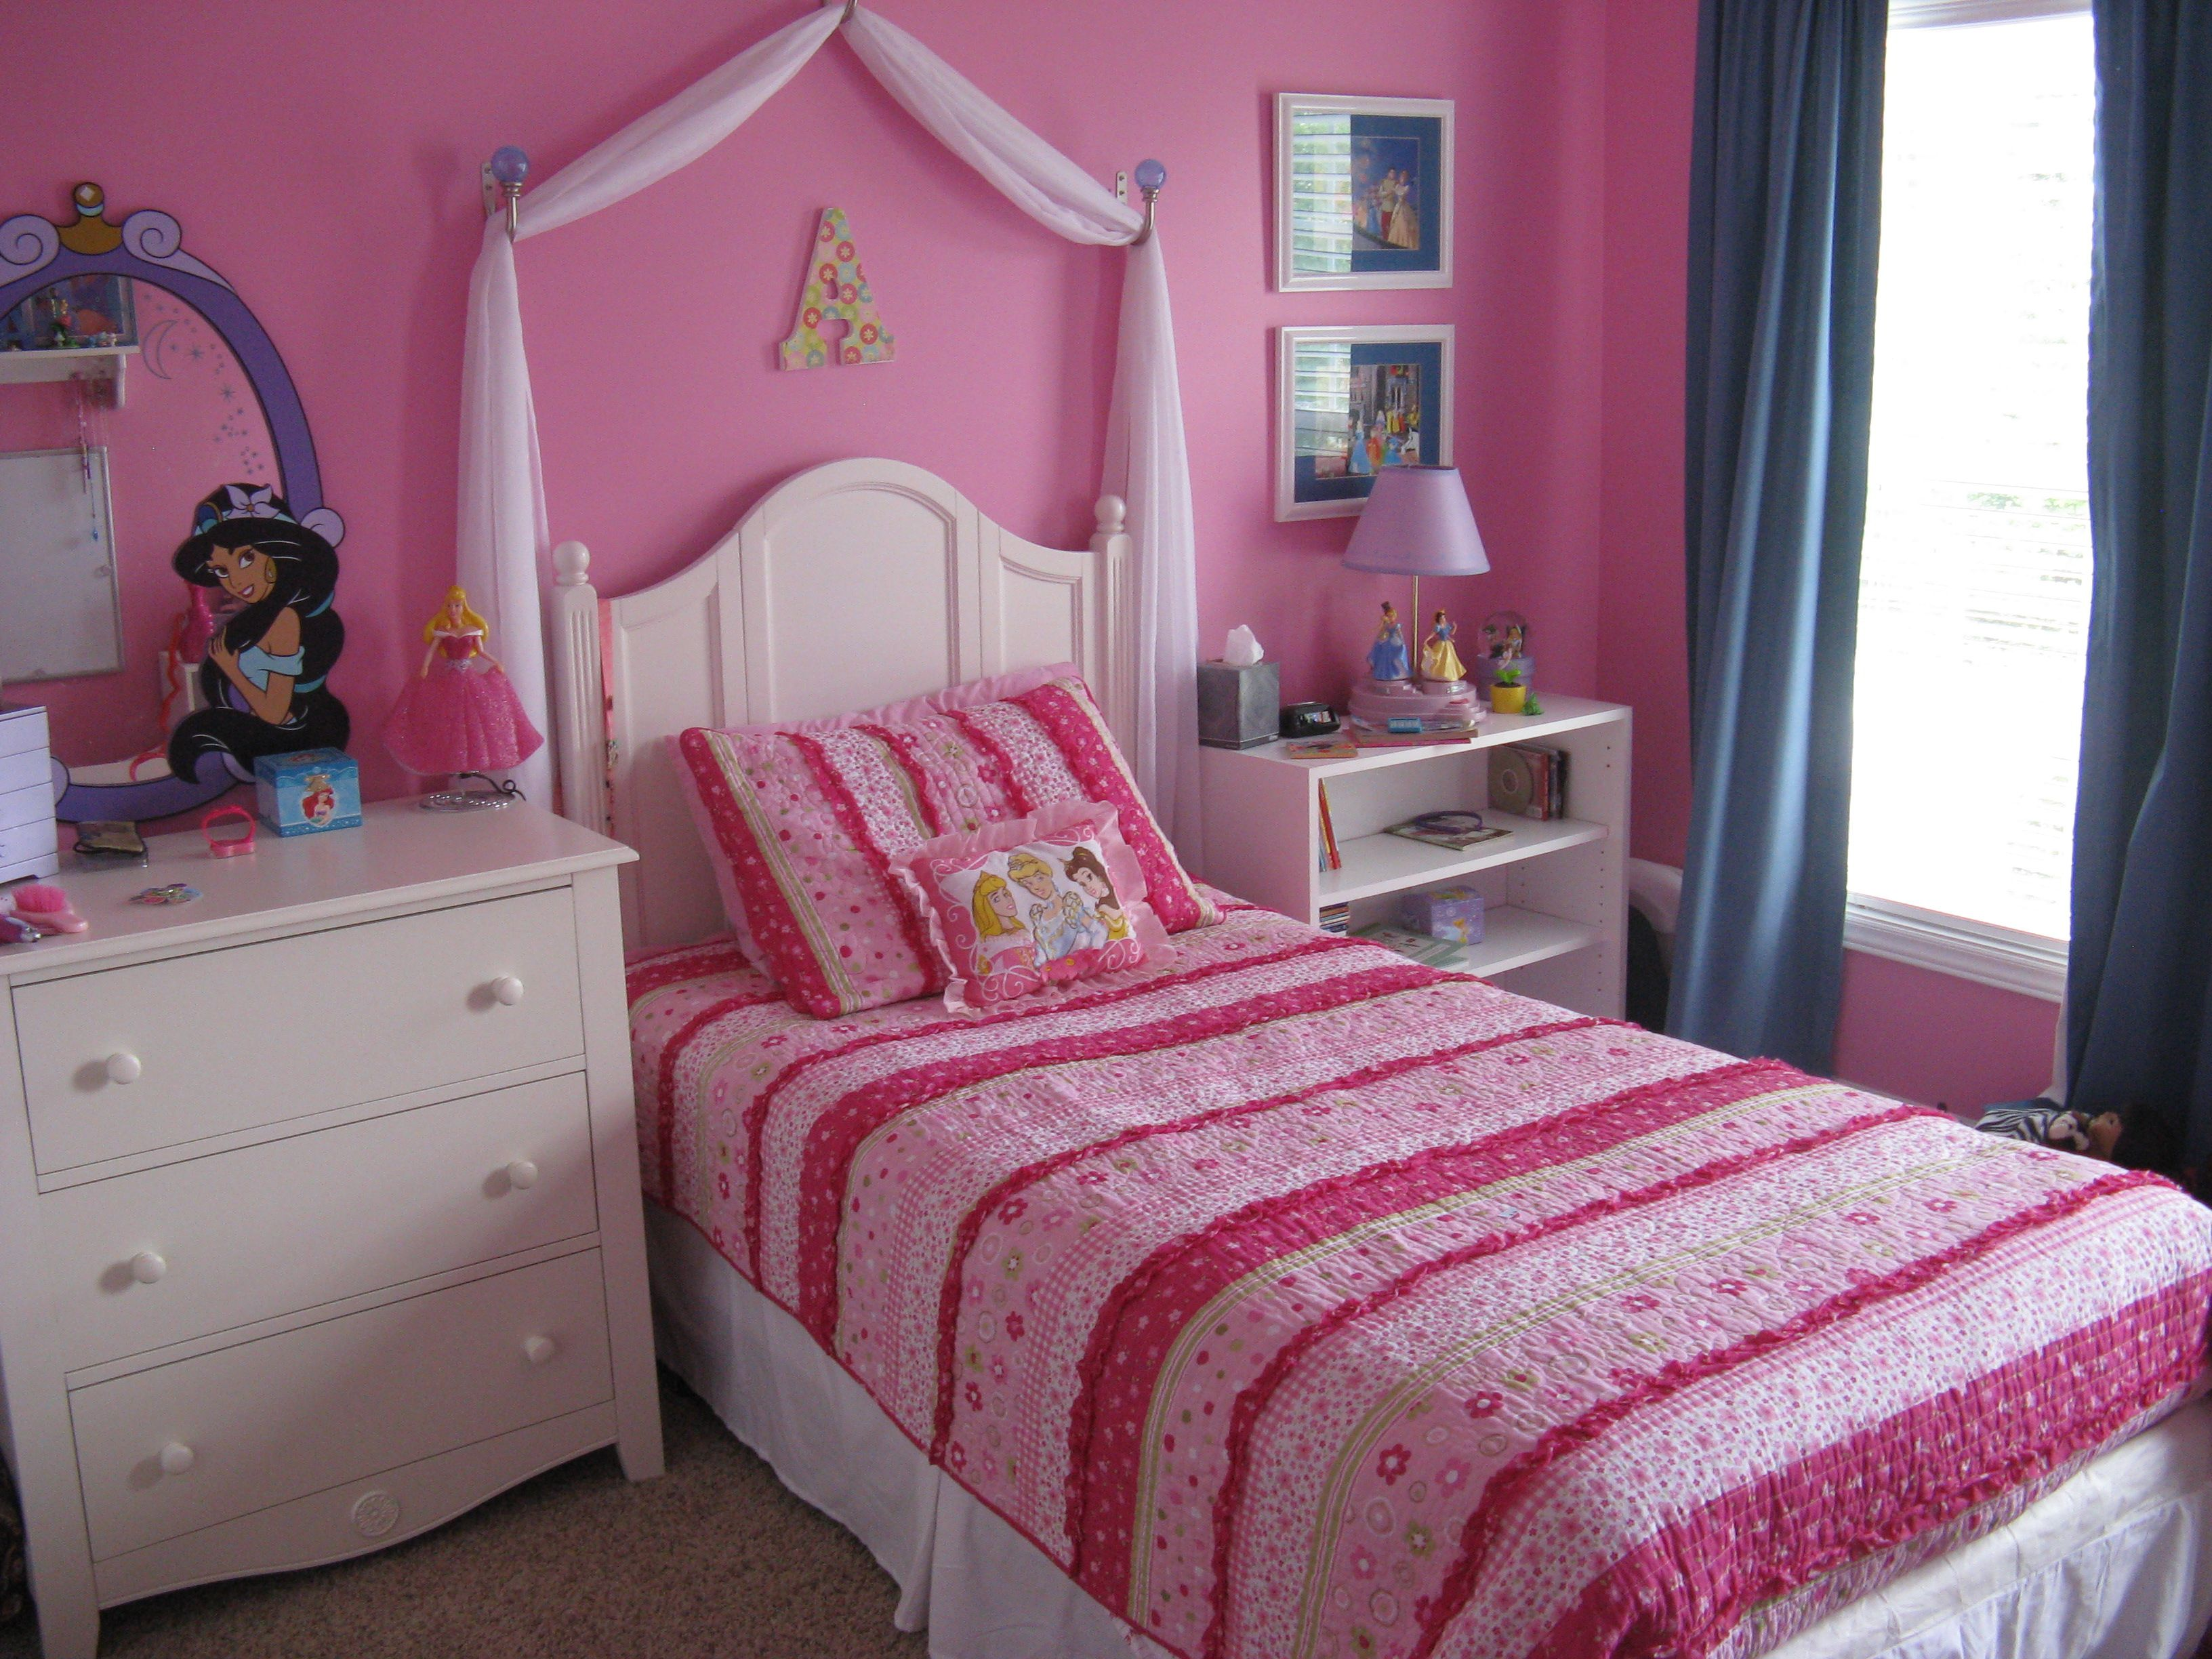 Princess Bedroom Designs Beauteous Creating A Disney Princess Room On A Budget  Princess Room Decorating Inspiration